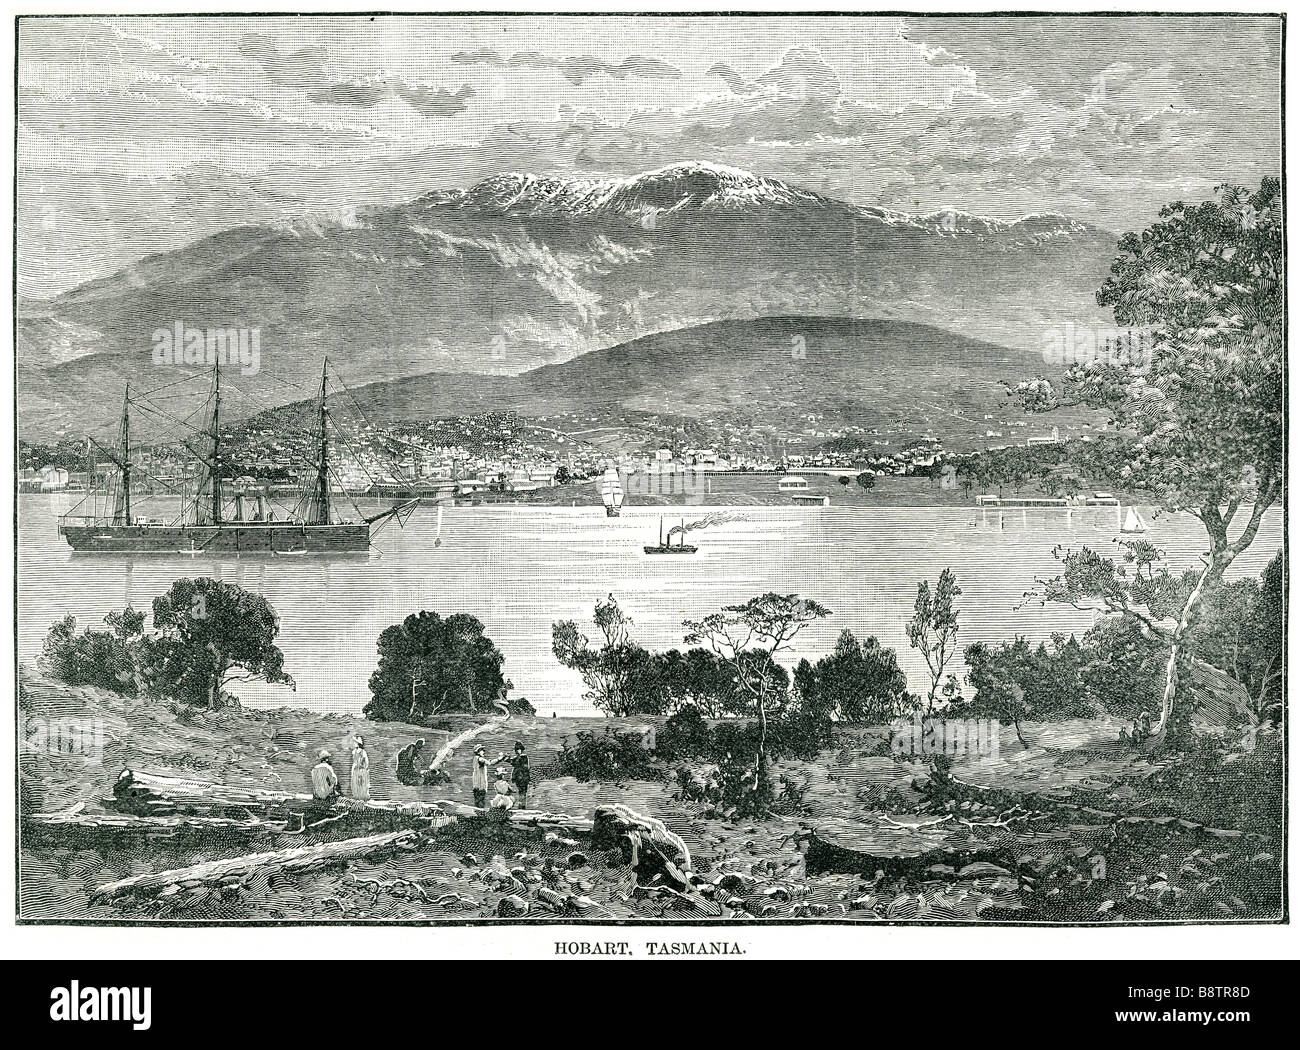 hobart tasmania Hobart is the state capital and most populous city of the Australian island state of Tasmania. Founded - Stock Image